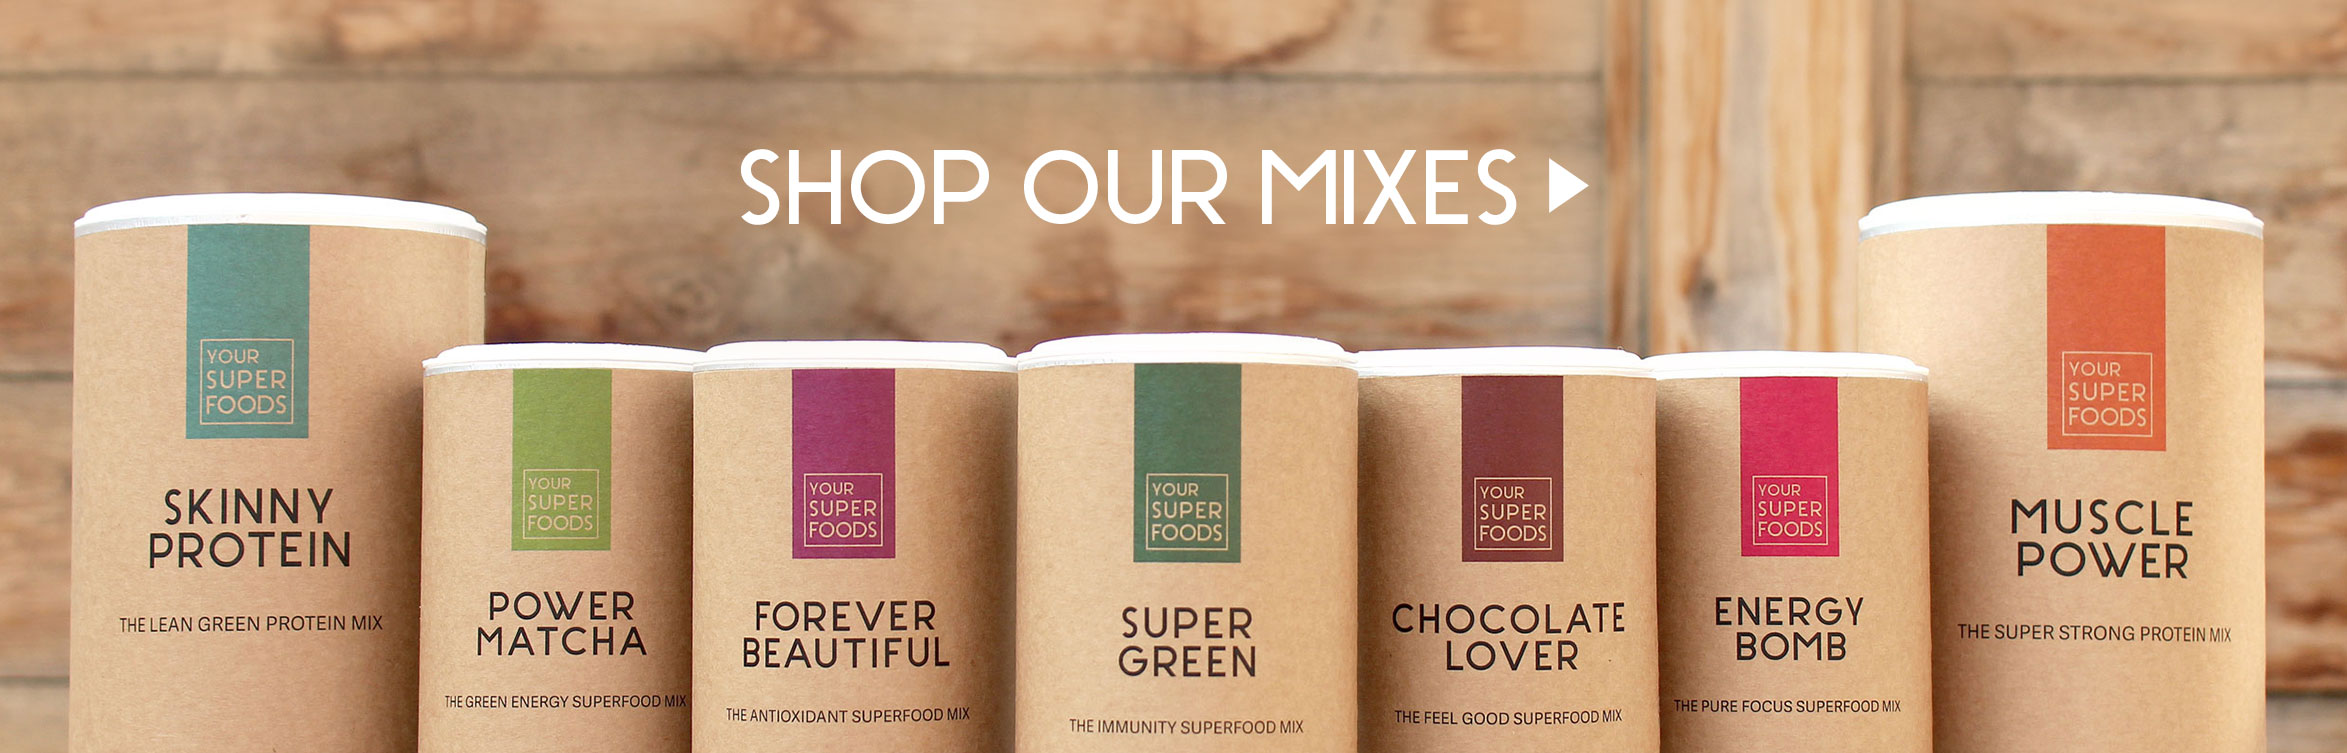 Shop our mixes - Vegan protein, spirulina, matcha, forever beautiful, chocolate lover, muscle power